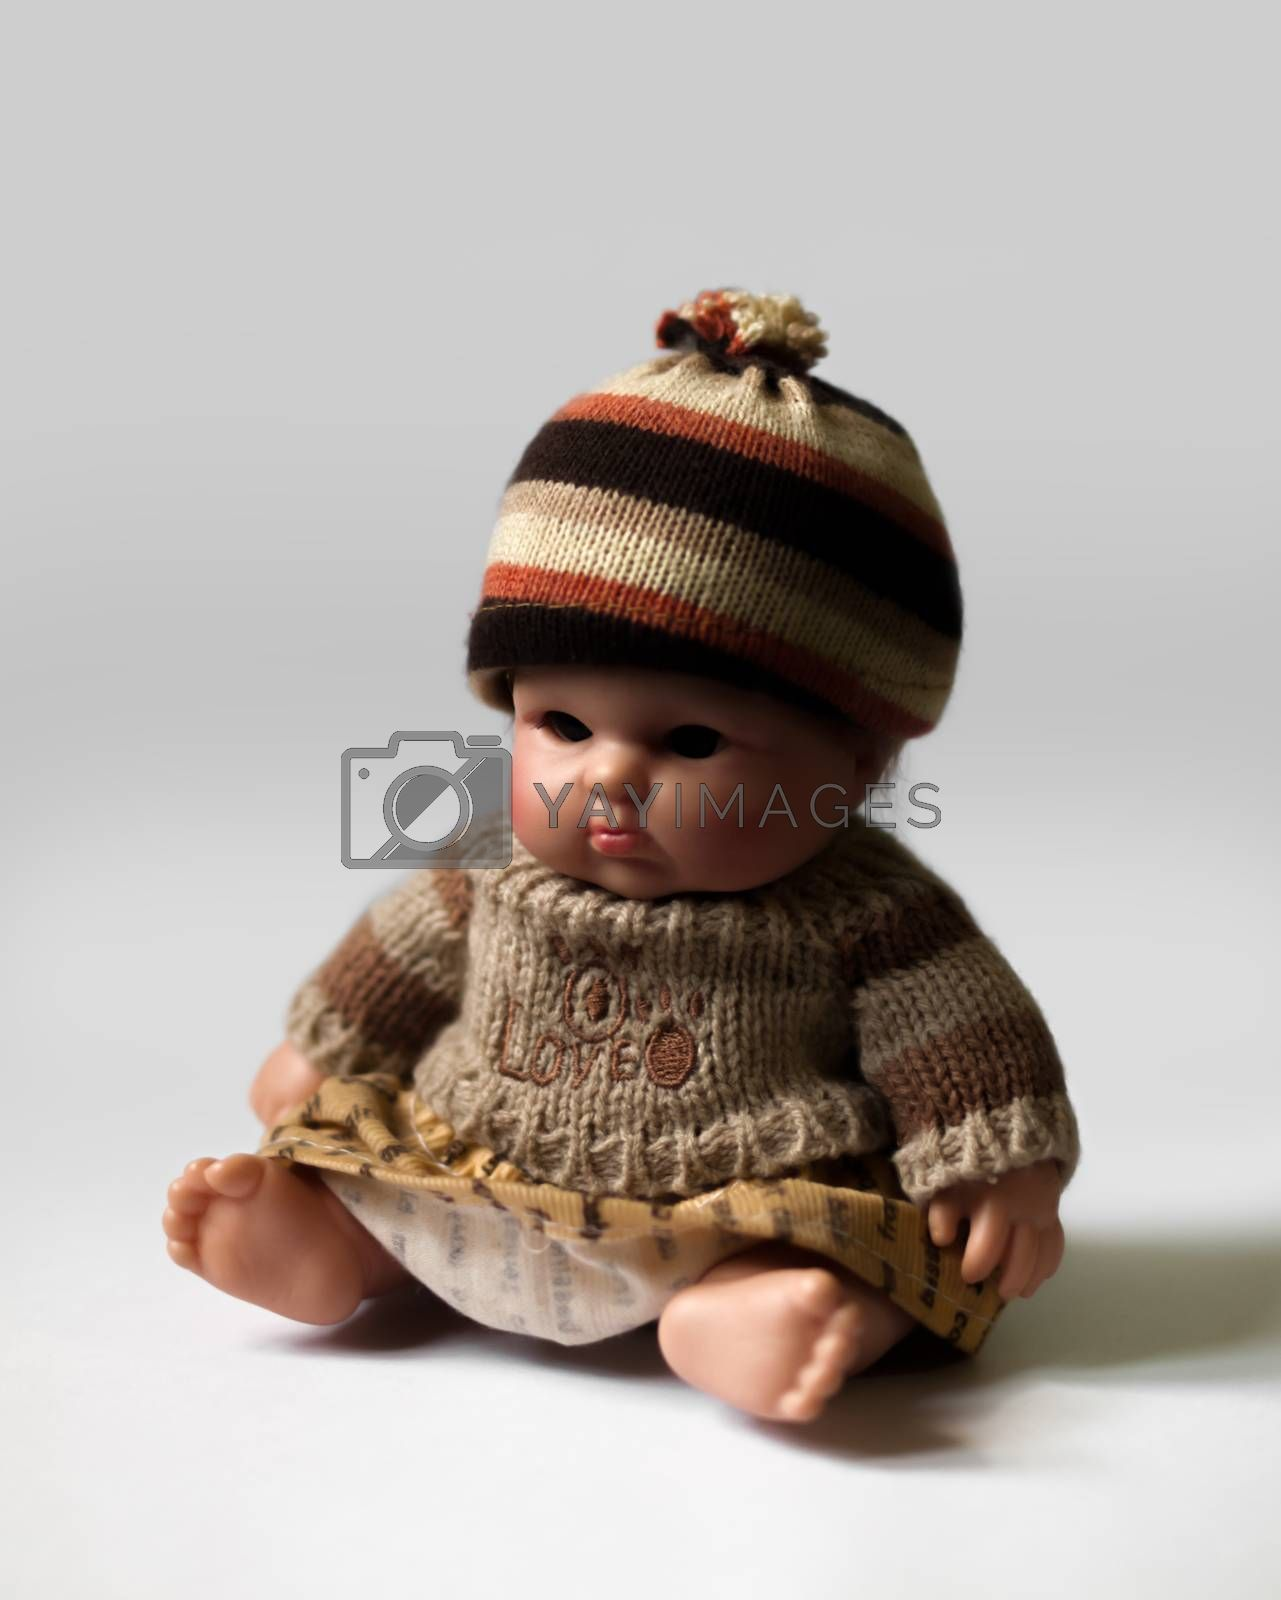 COLOR PHOTO OF SITTING DOLL